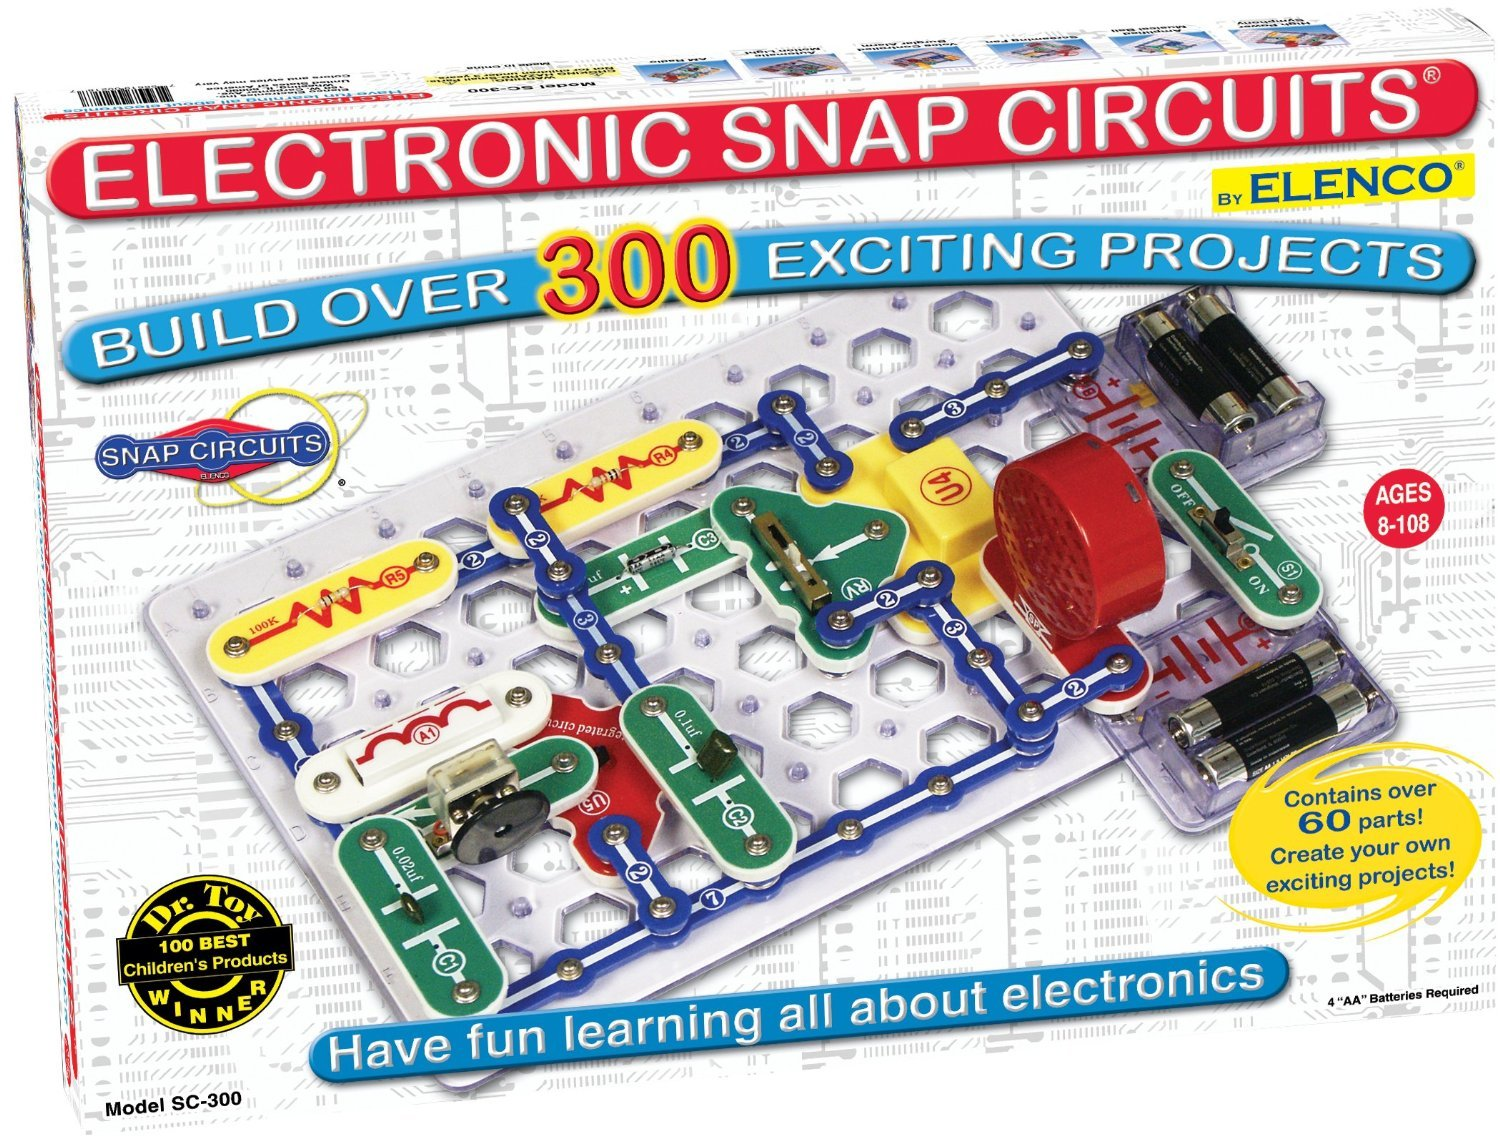 snap circuits extreme sc 750 manual